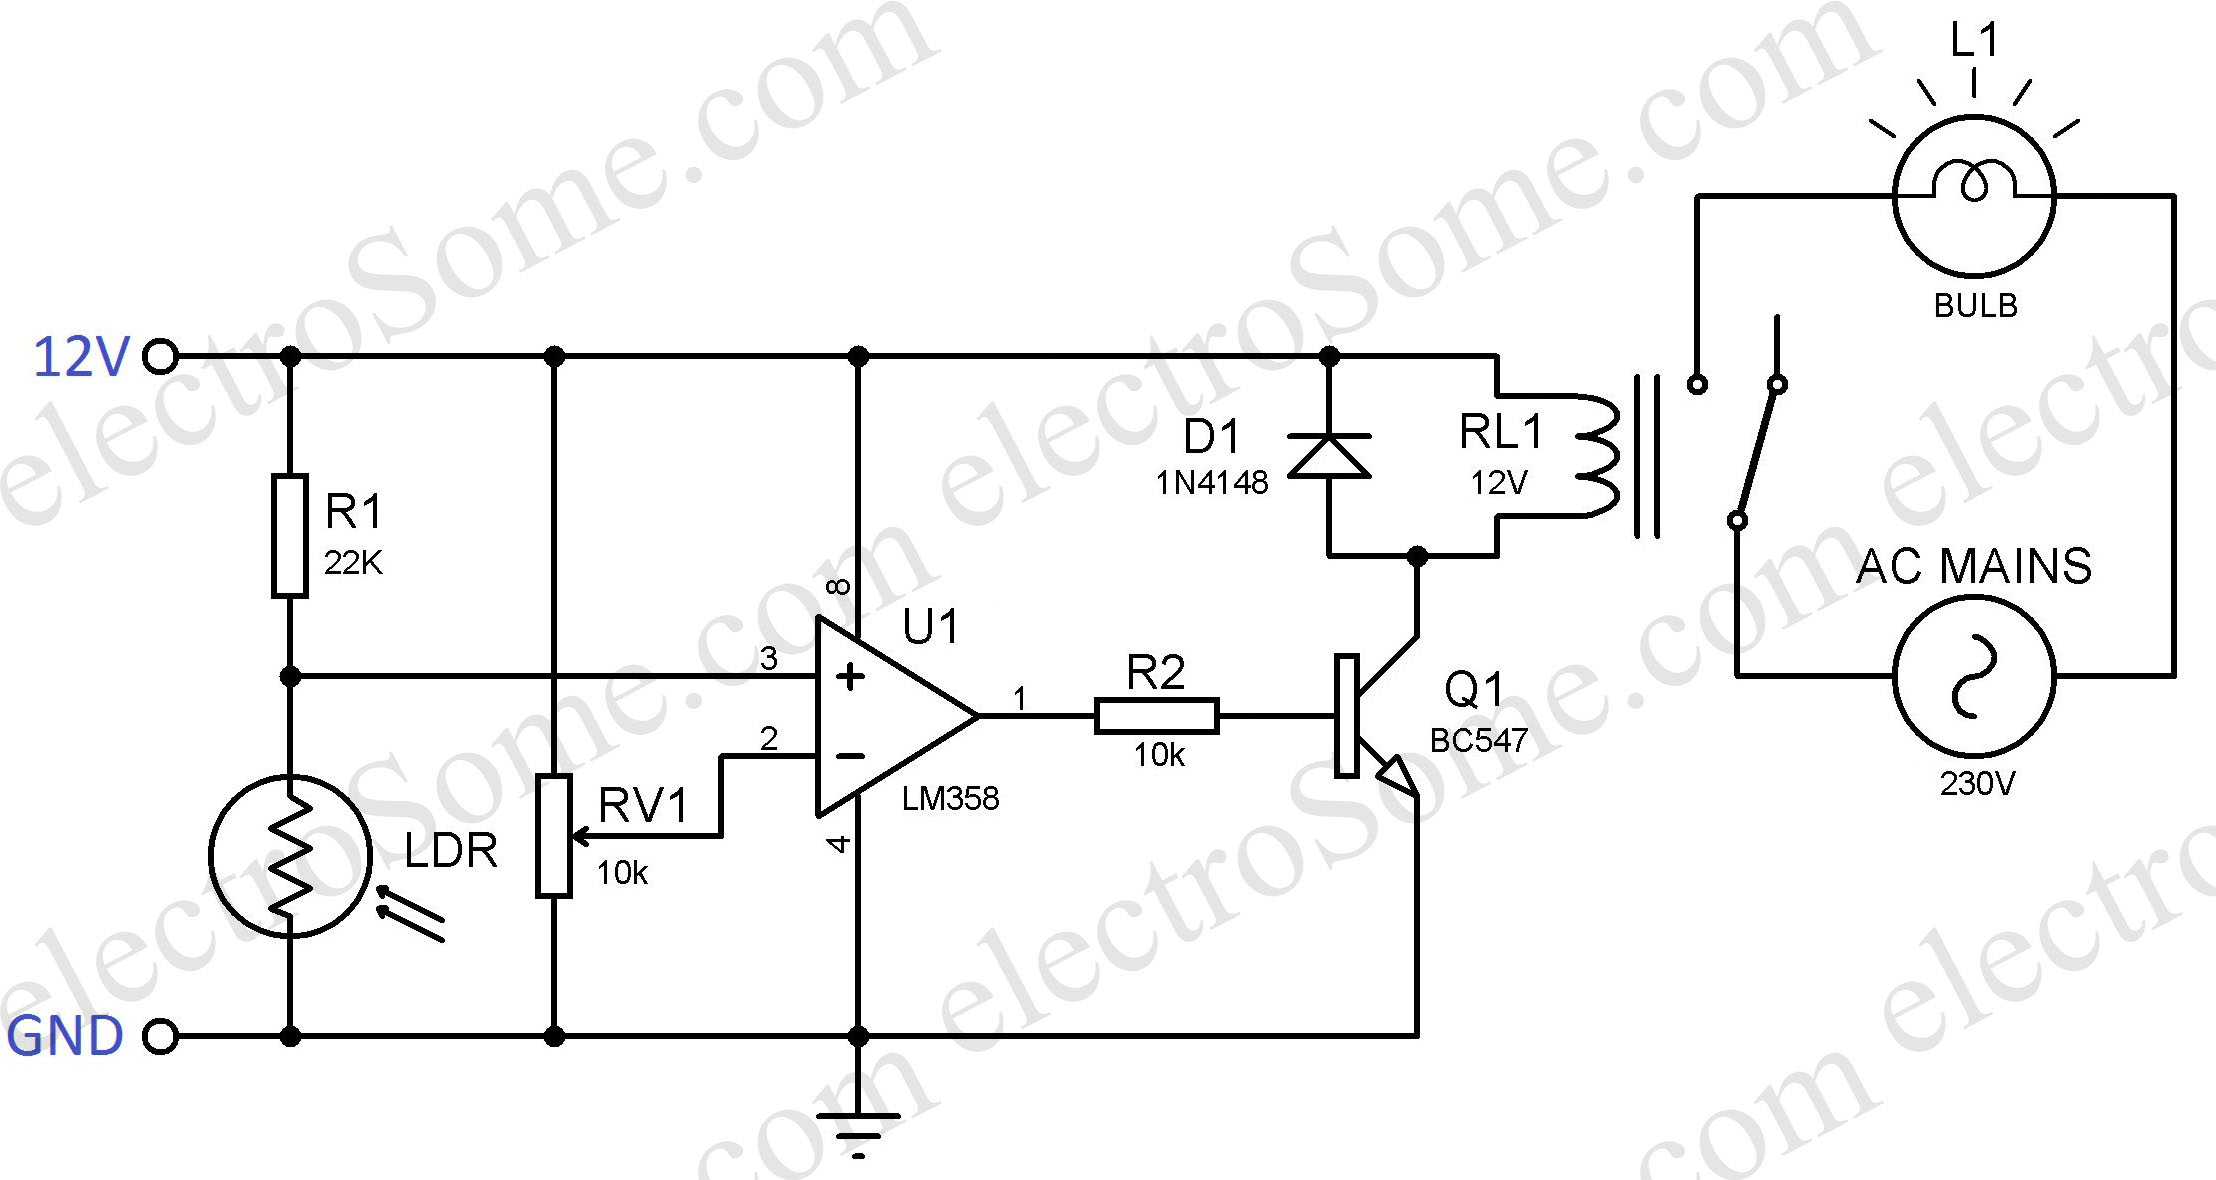 Automatic Night Lamp Using Ldr 12 Volt Led Flasher Circuit Click For Details Diagram